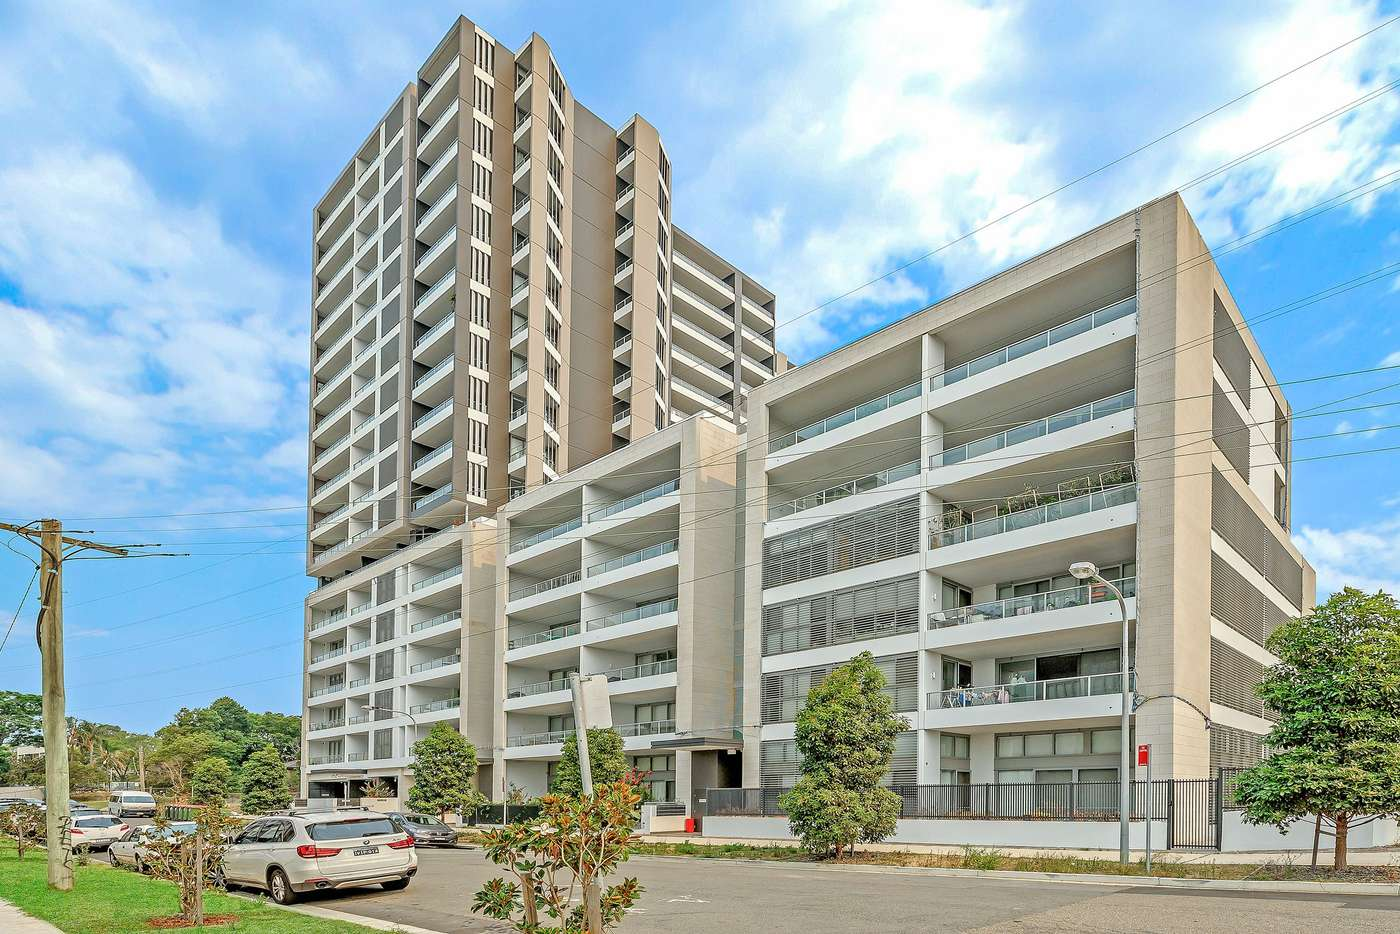 Main view of Homely apartment listing, 124/2-8 James Street, Carlingford NSW 2118